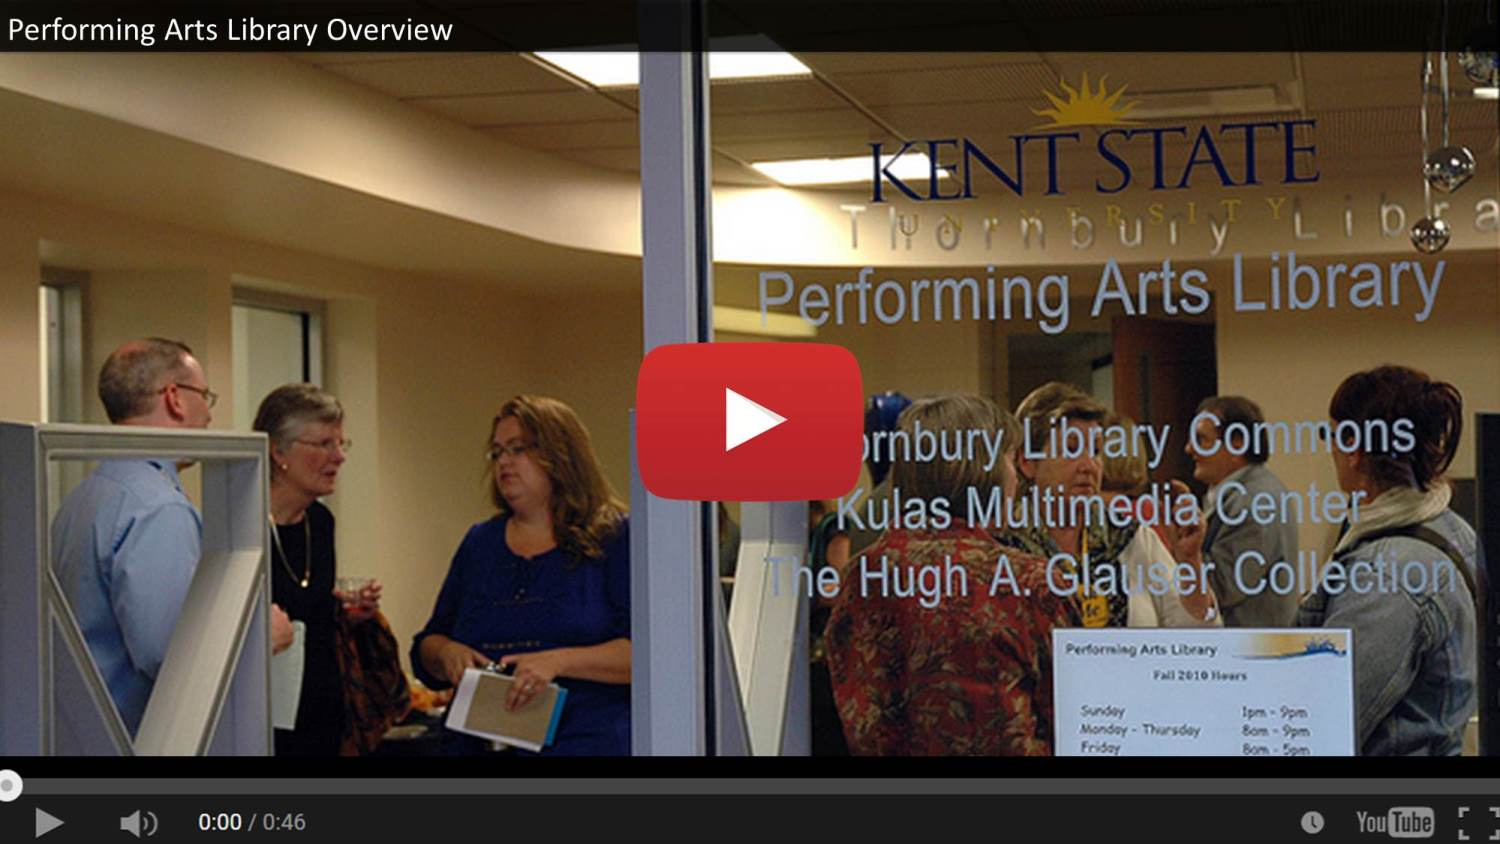 Show more about Video Overview of Performing Arts Library Spaces and Services